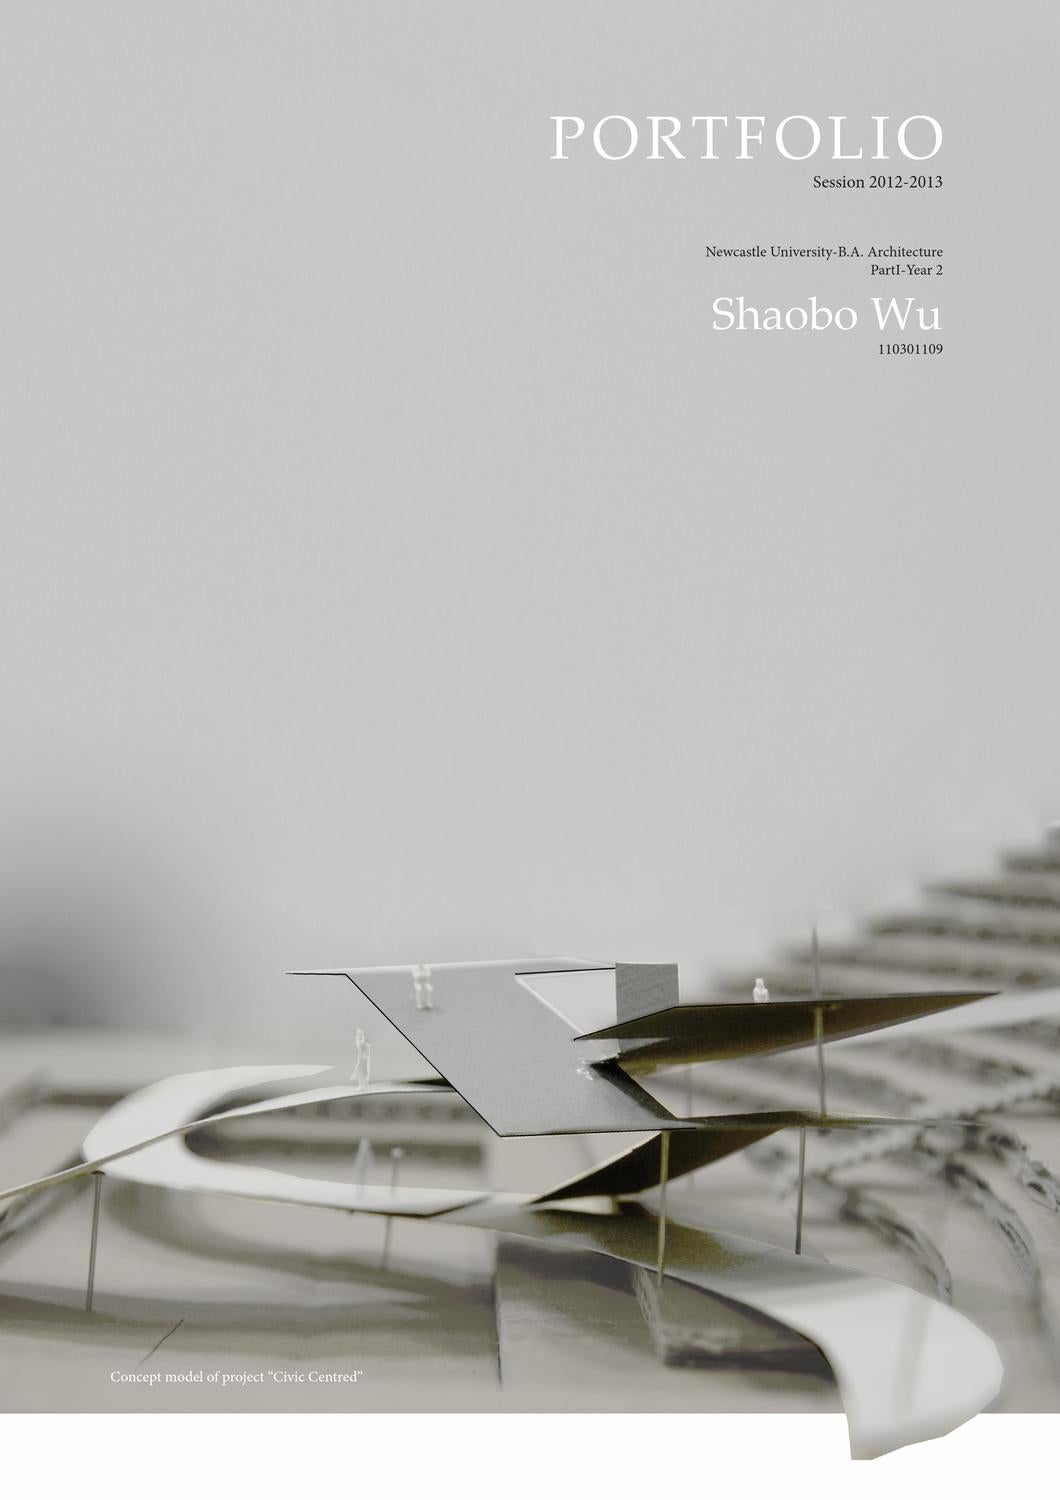 shaobo wu  architecture portfolio session 2012-2013 by shawn wu